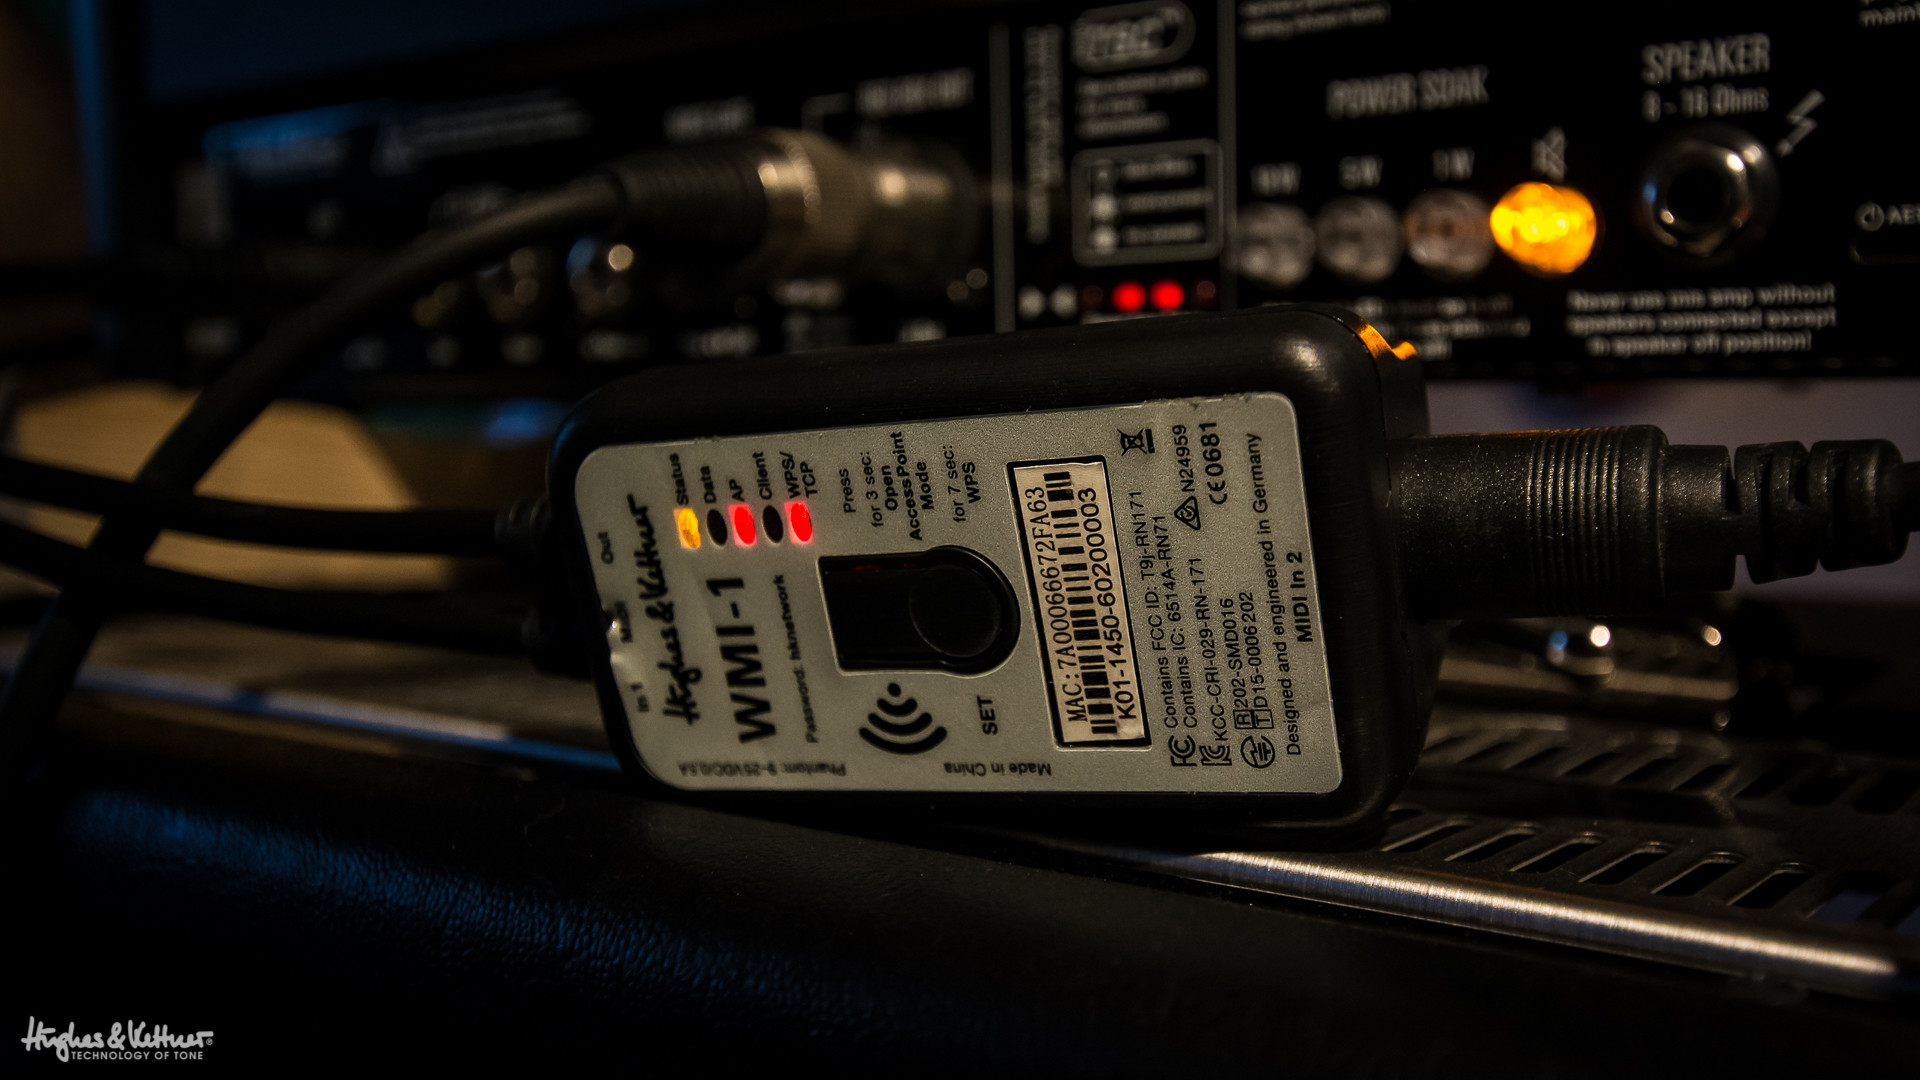 The Hughes & Kettner WMI-1, the wireless MIDI interface that lets you –